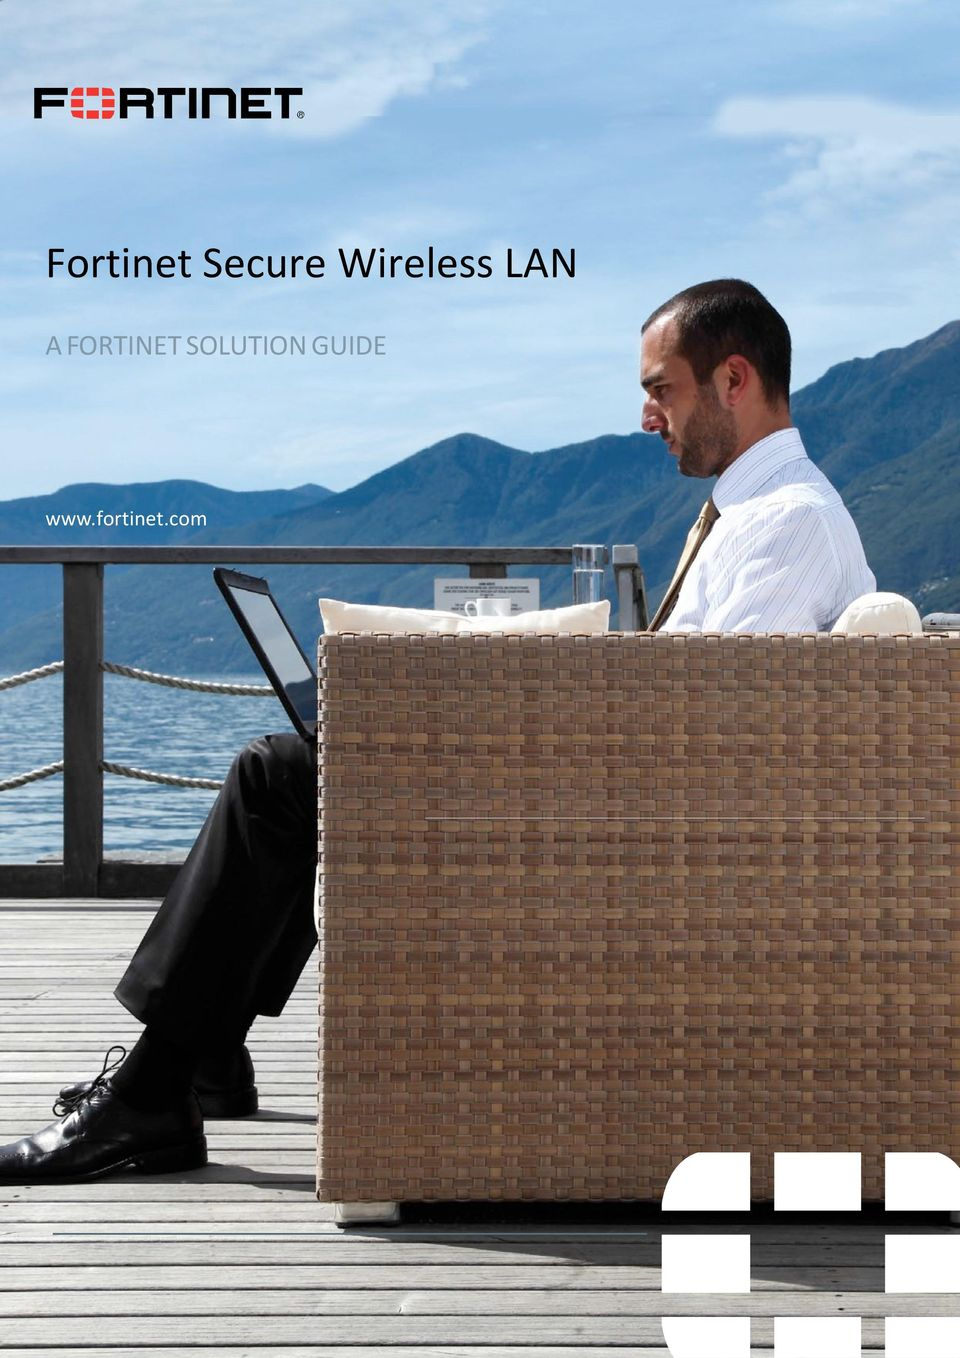 FORTINET SOLUTION